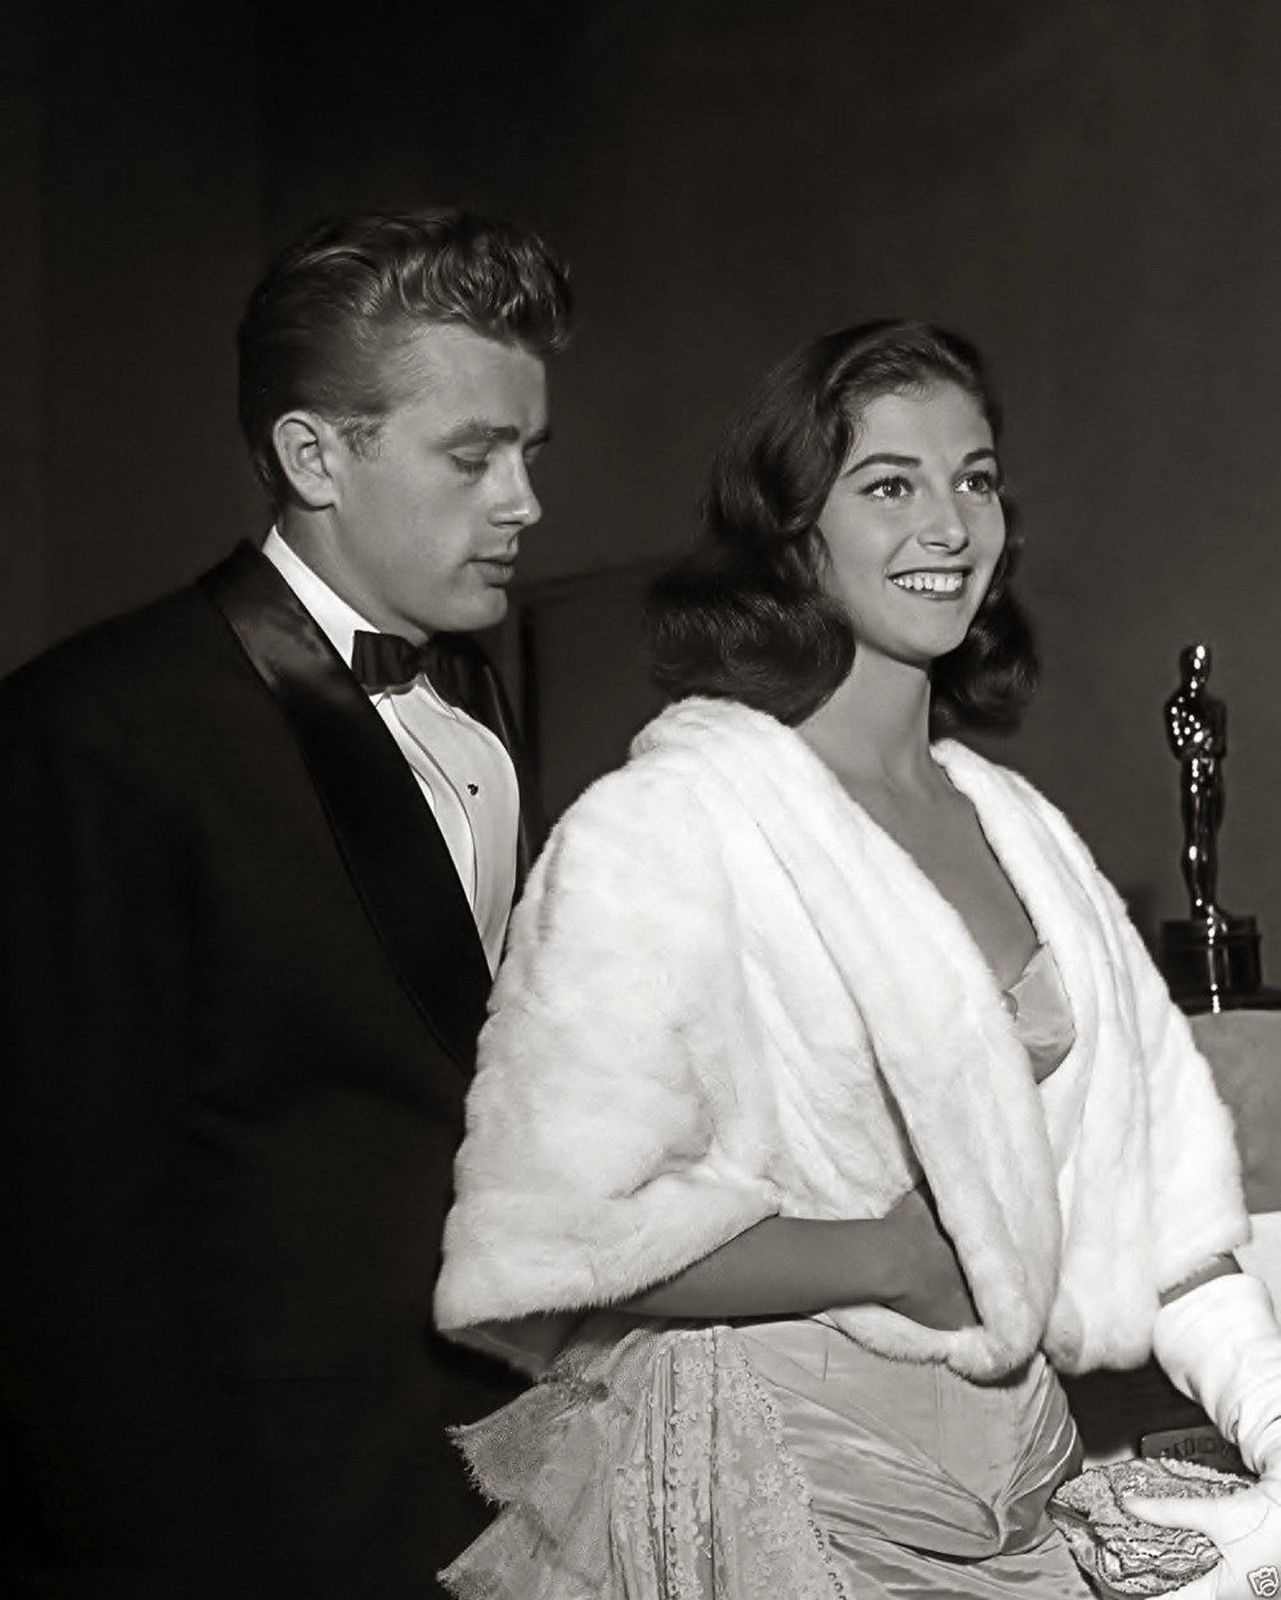 Ana Maria Pier Angeli j.dean & pier angeli, attend the premiere of the re-release